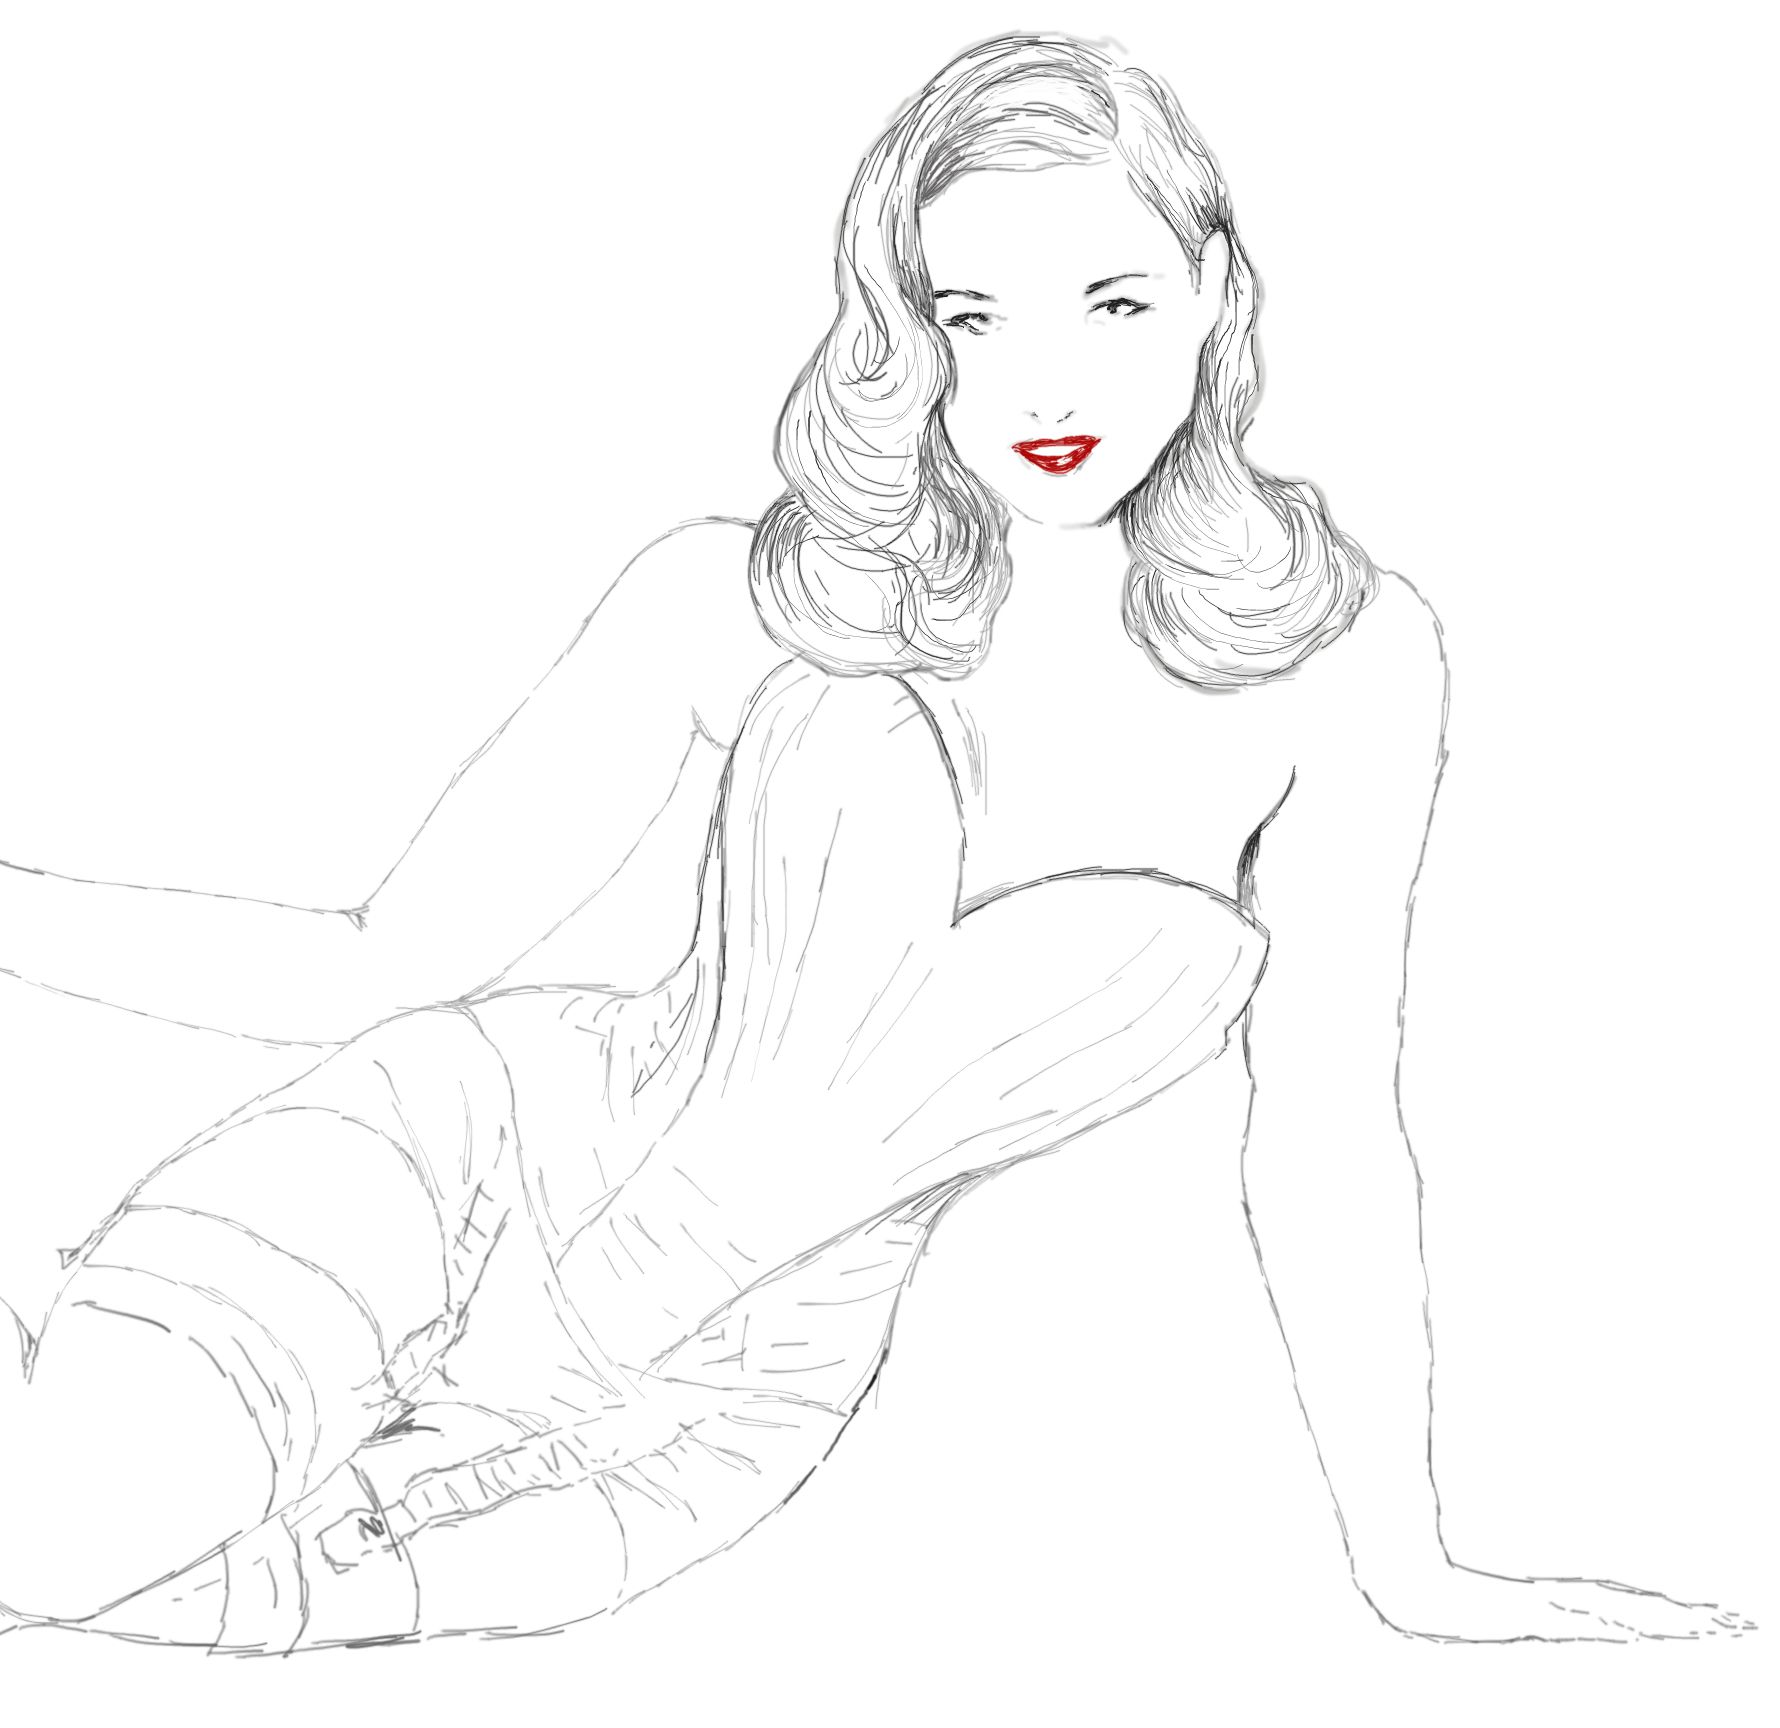 Dita First Sketch On Wacom Tablet Drawing Digital